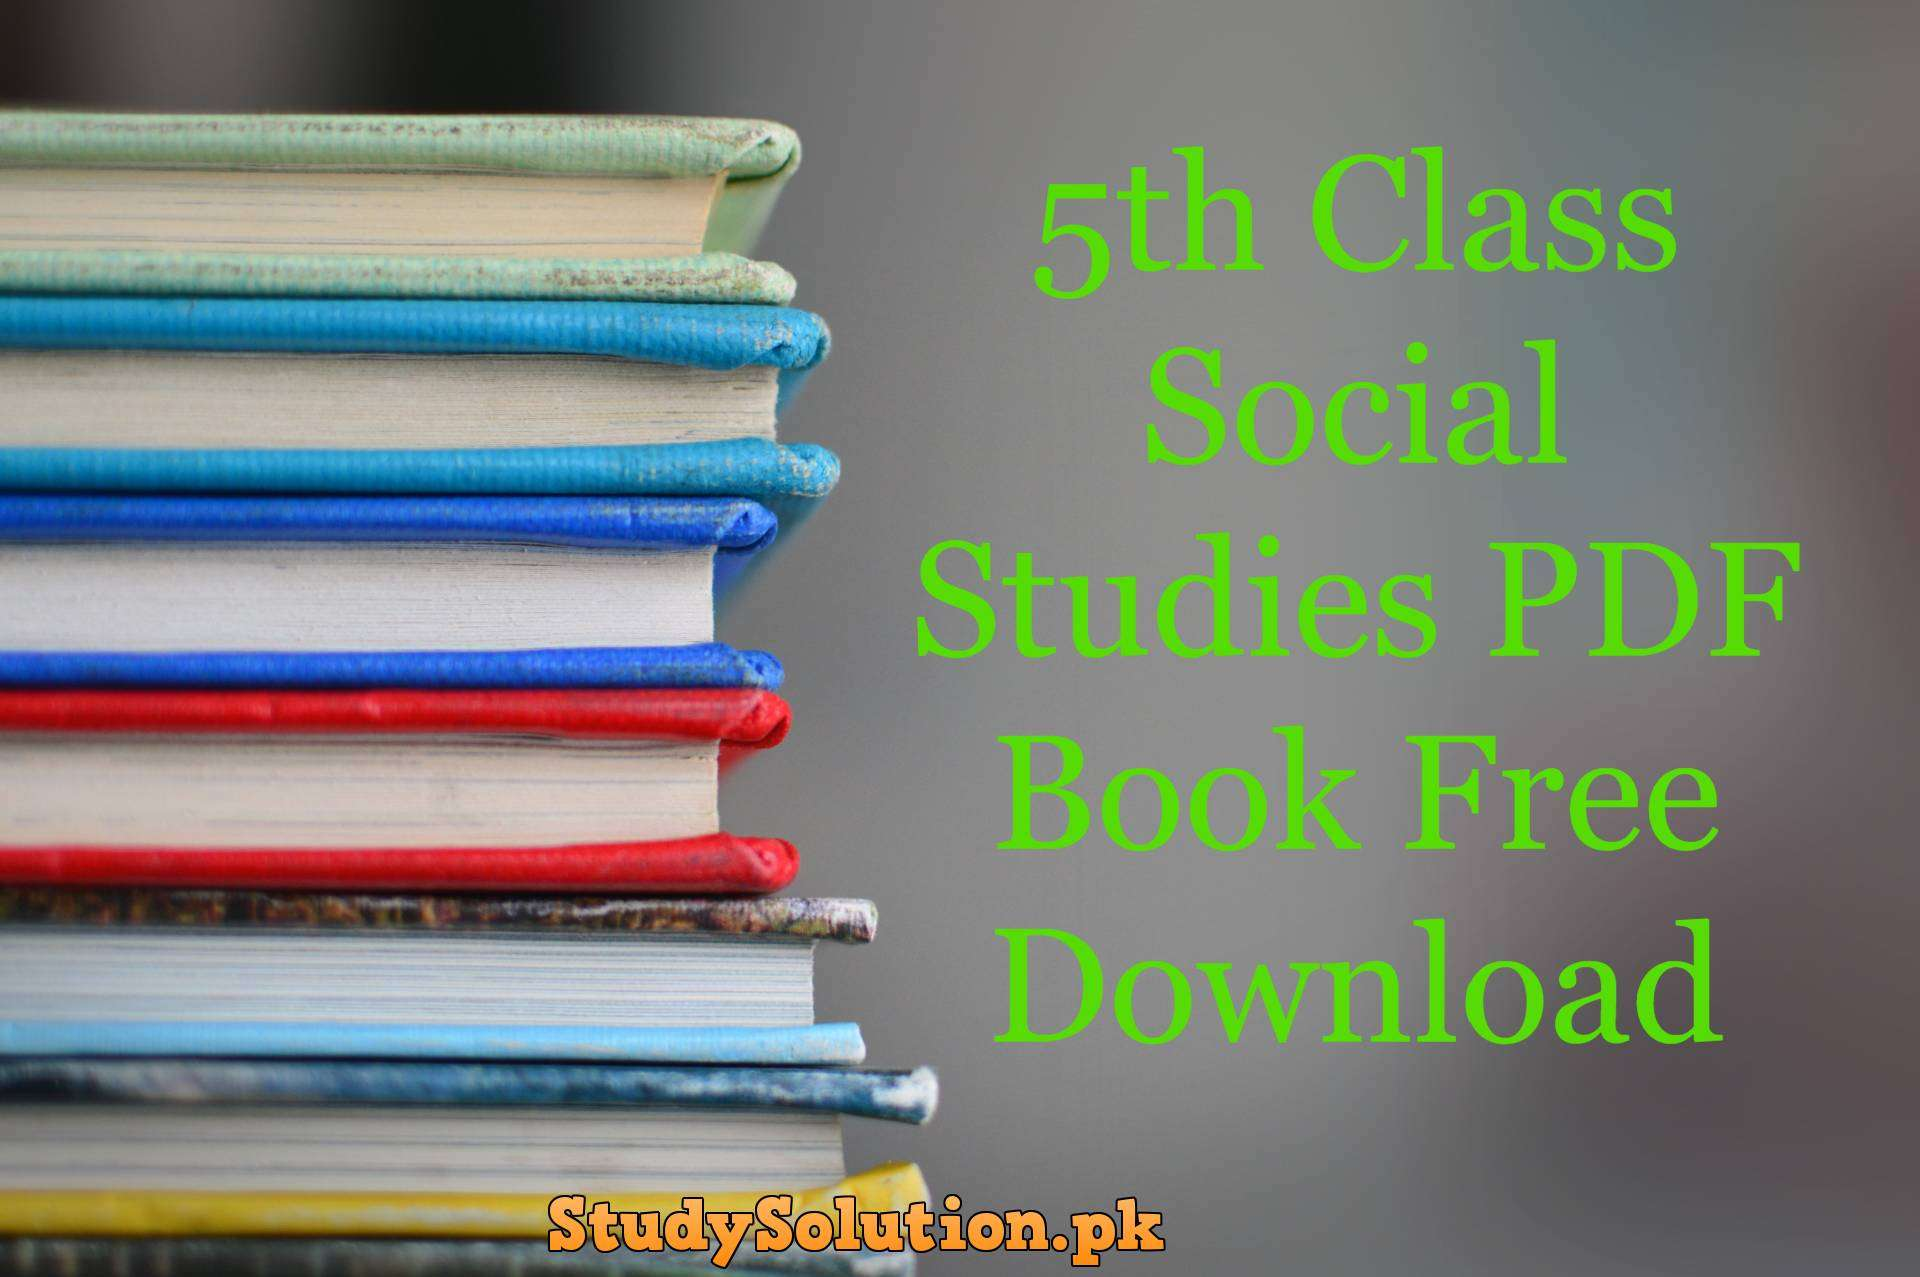 5th Class Social Studies PDF Book Free Download